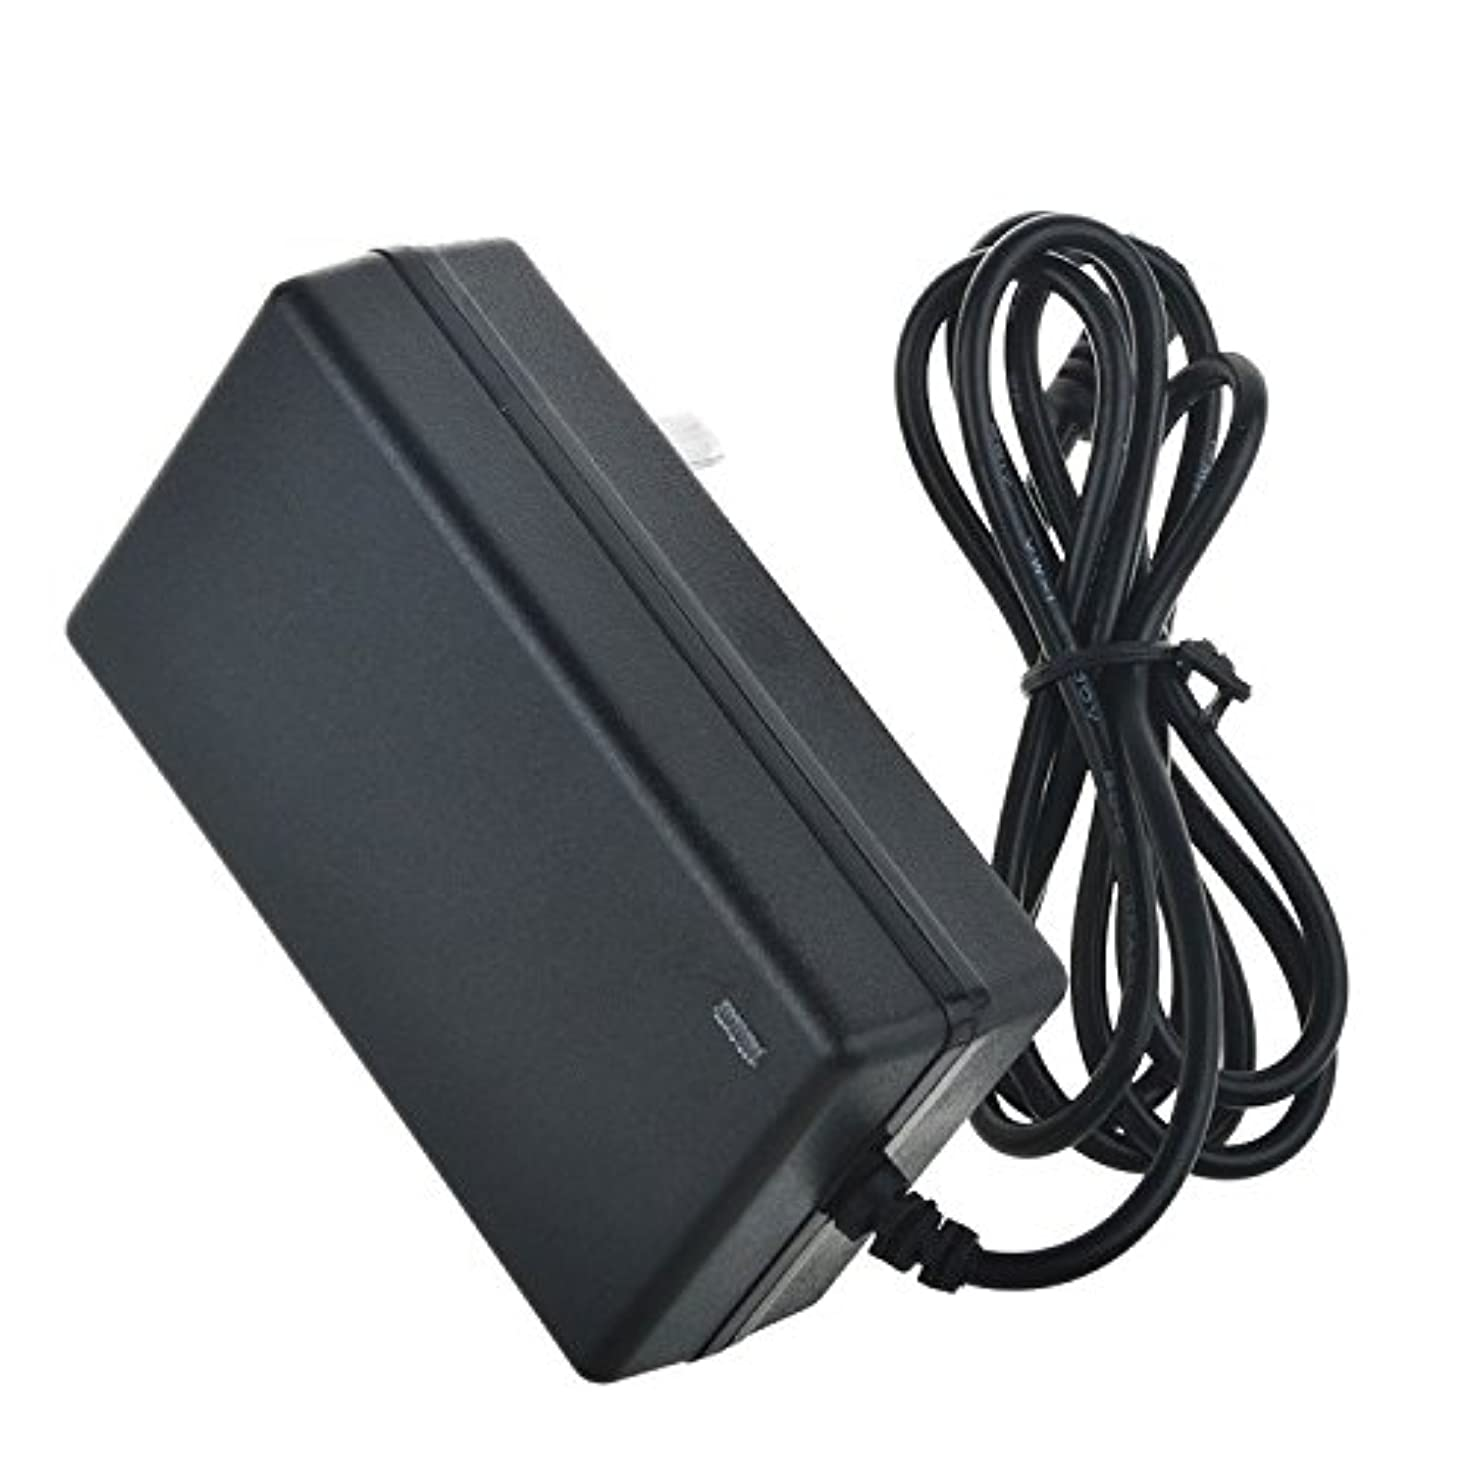 PK Power TRANSFORMADOR ICOM AC Adapter AD-55 USADO POR IC-R75 Y IC-R8500 Radio HAM Power Supply